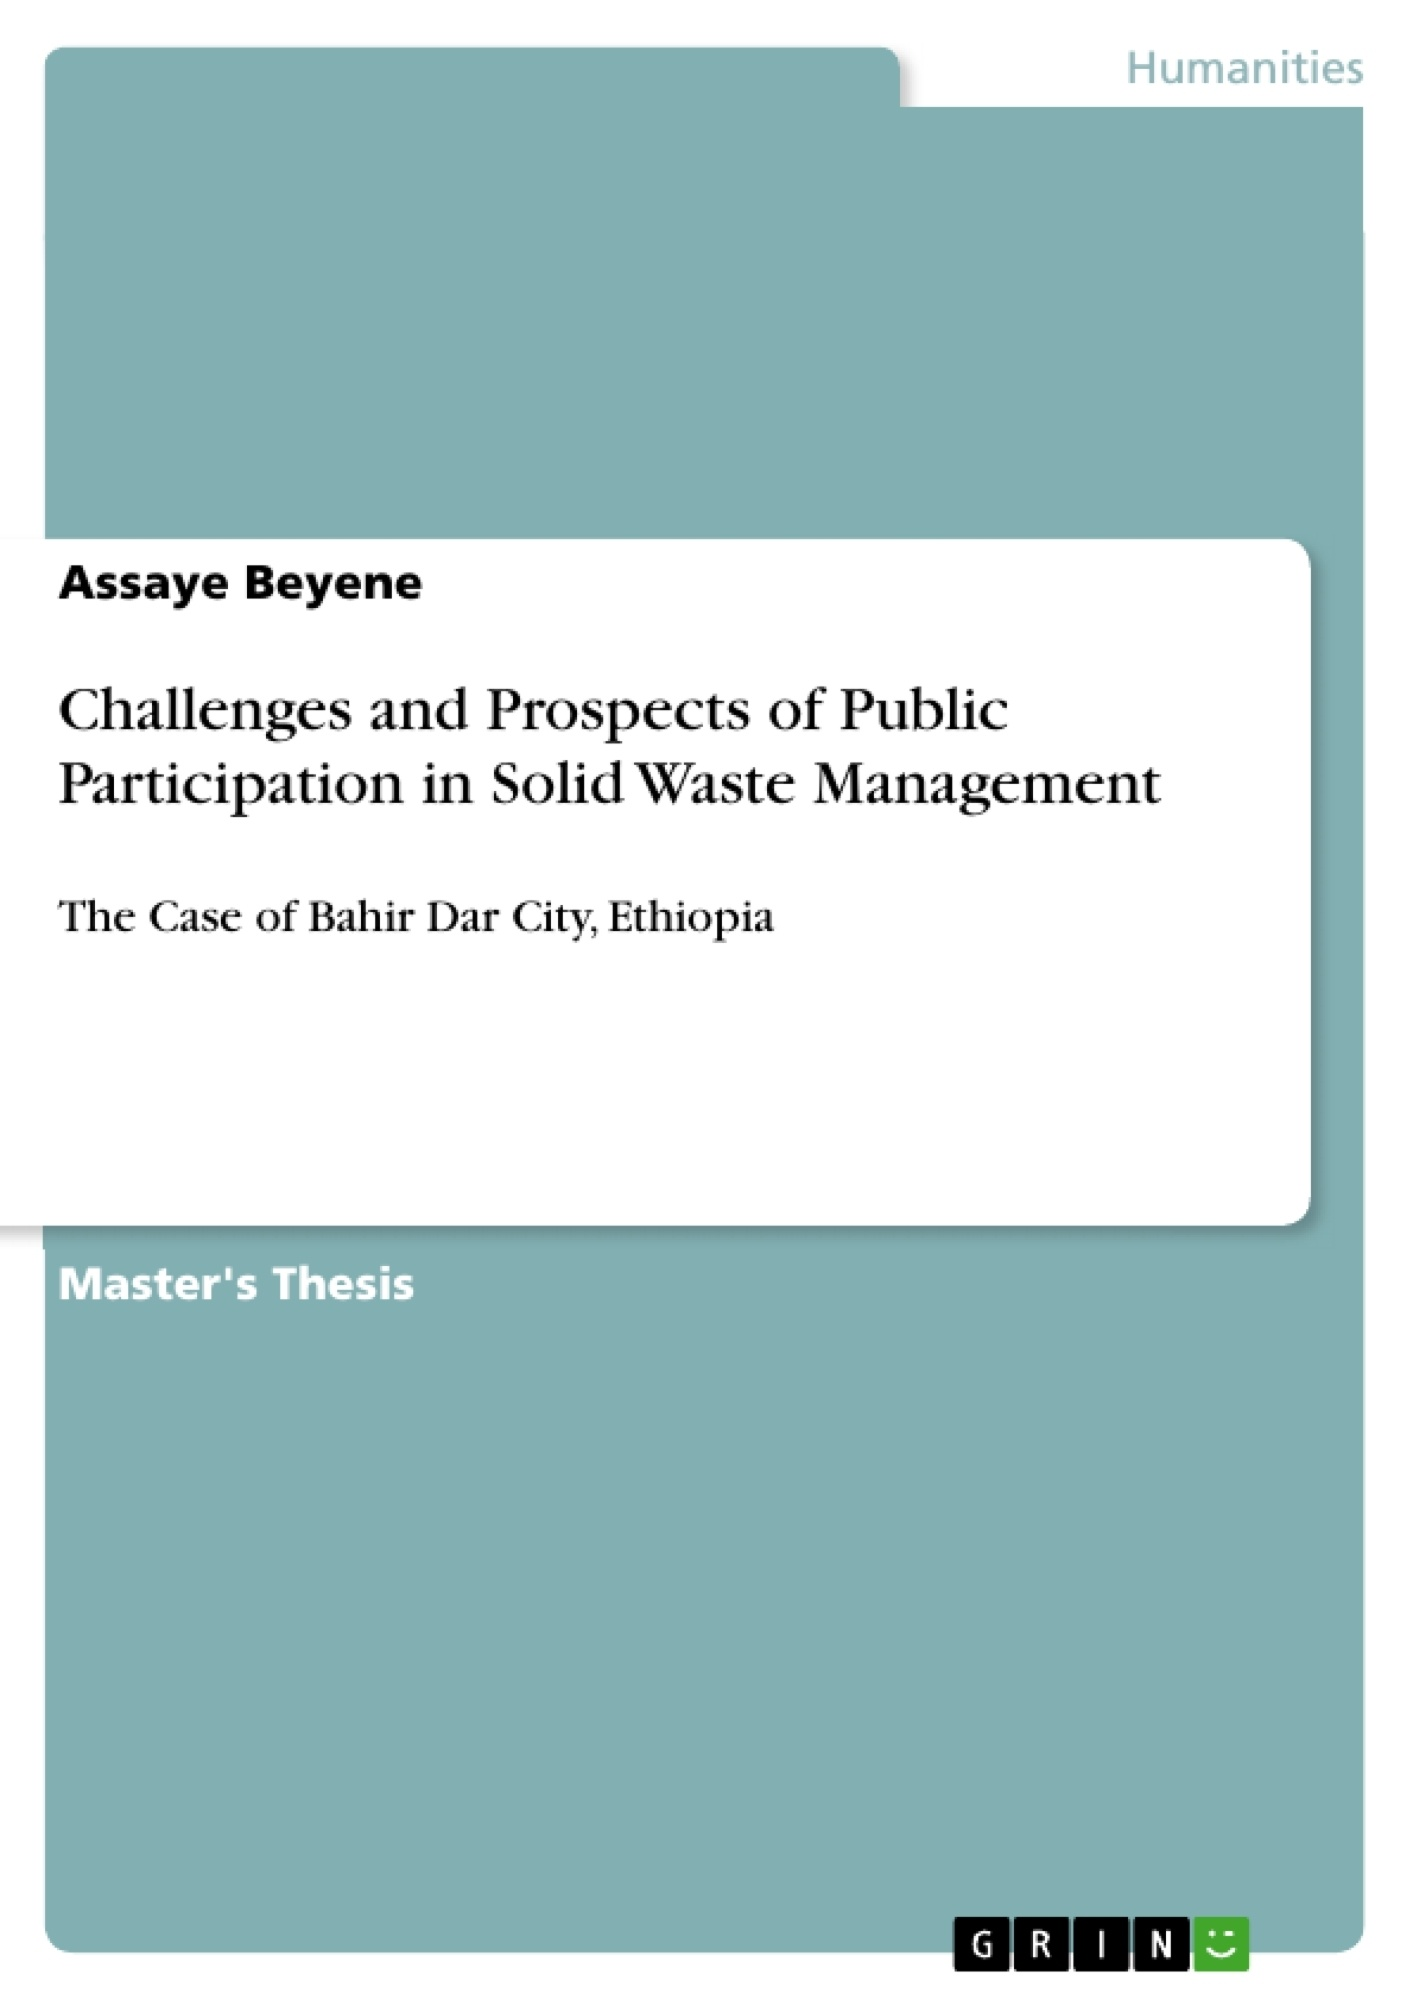 Title: Challenges and Prospects of Public Participation in Solid Waste Management